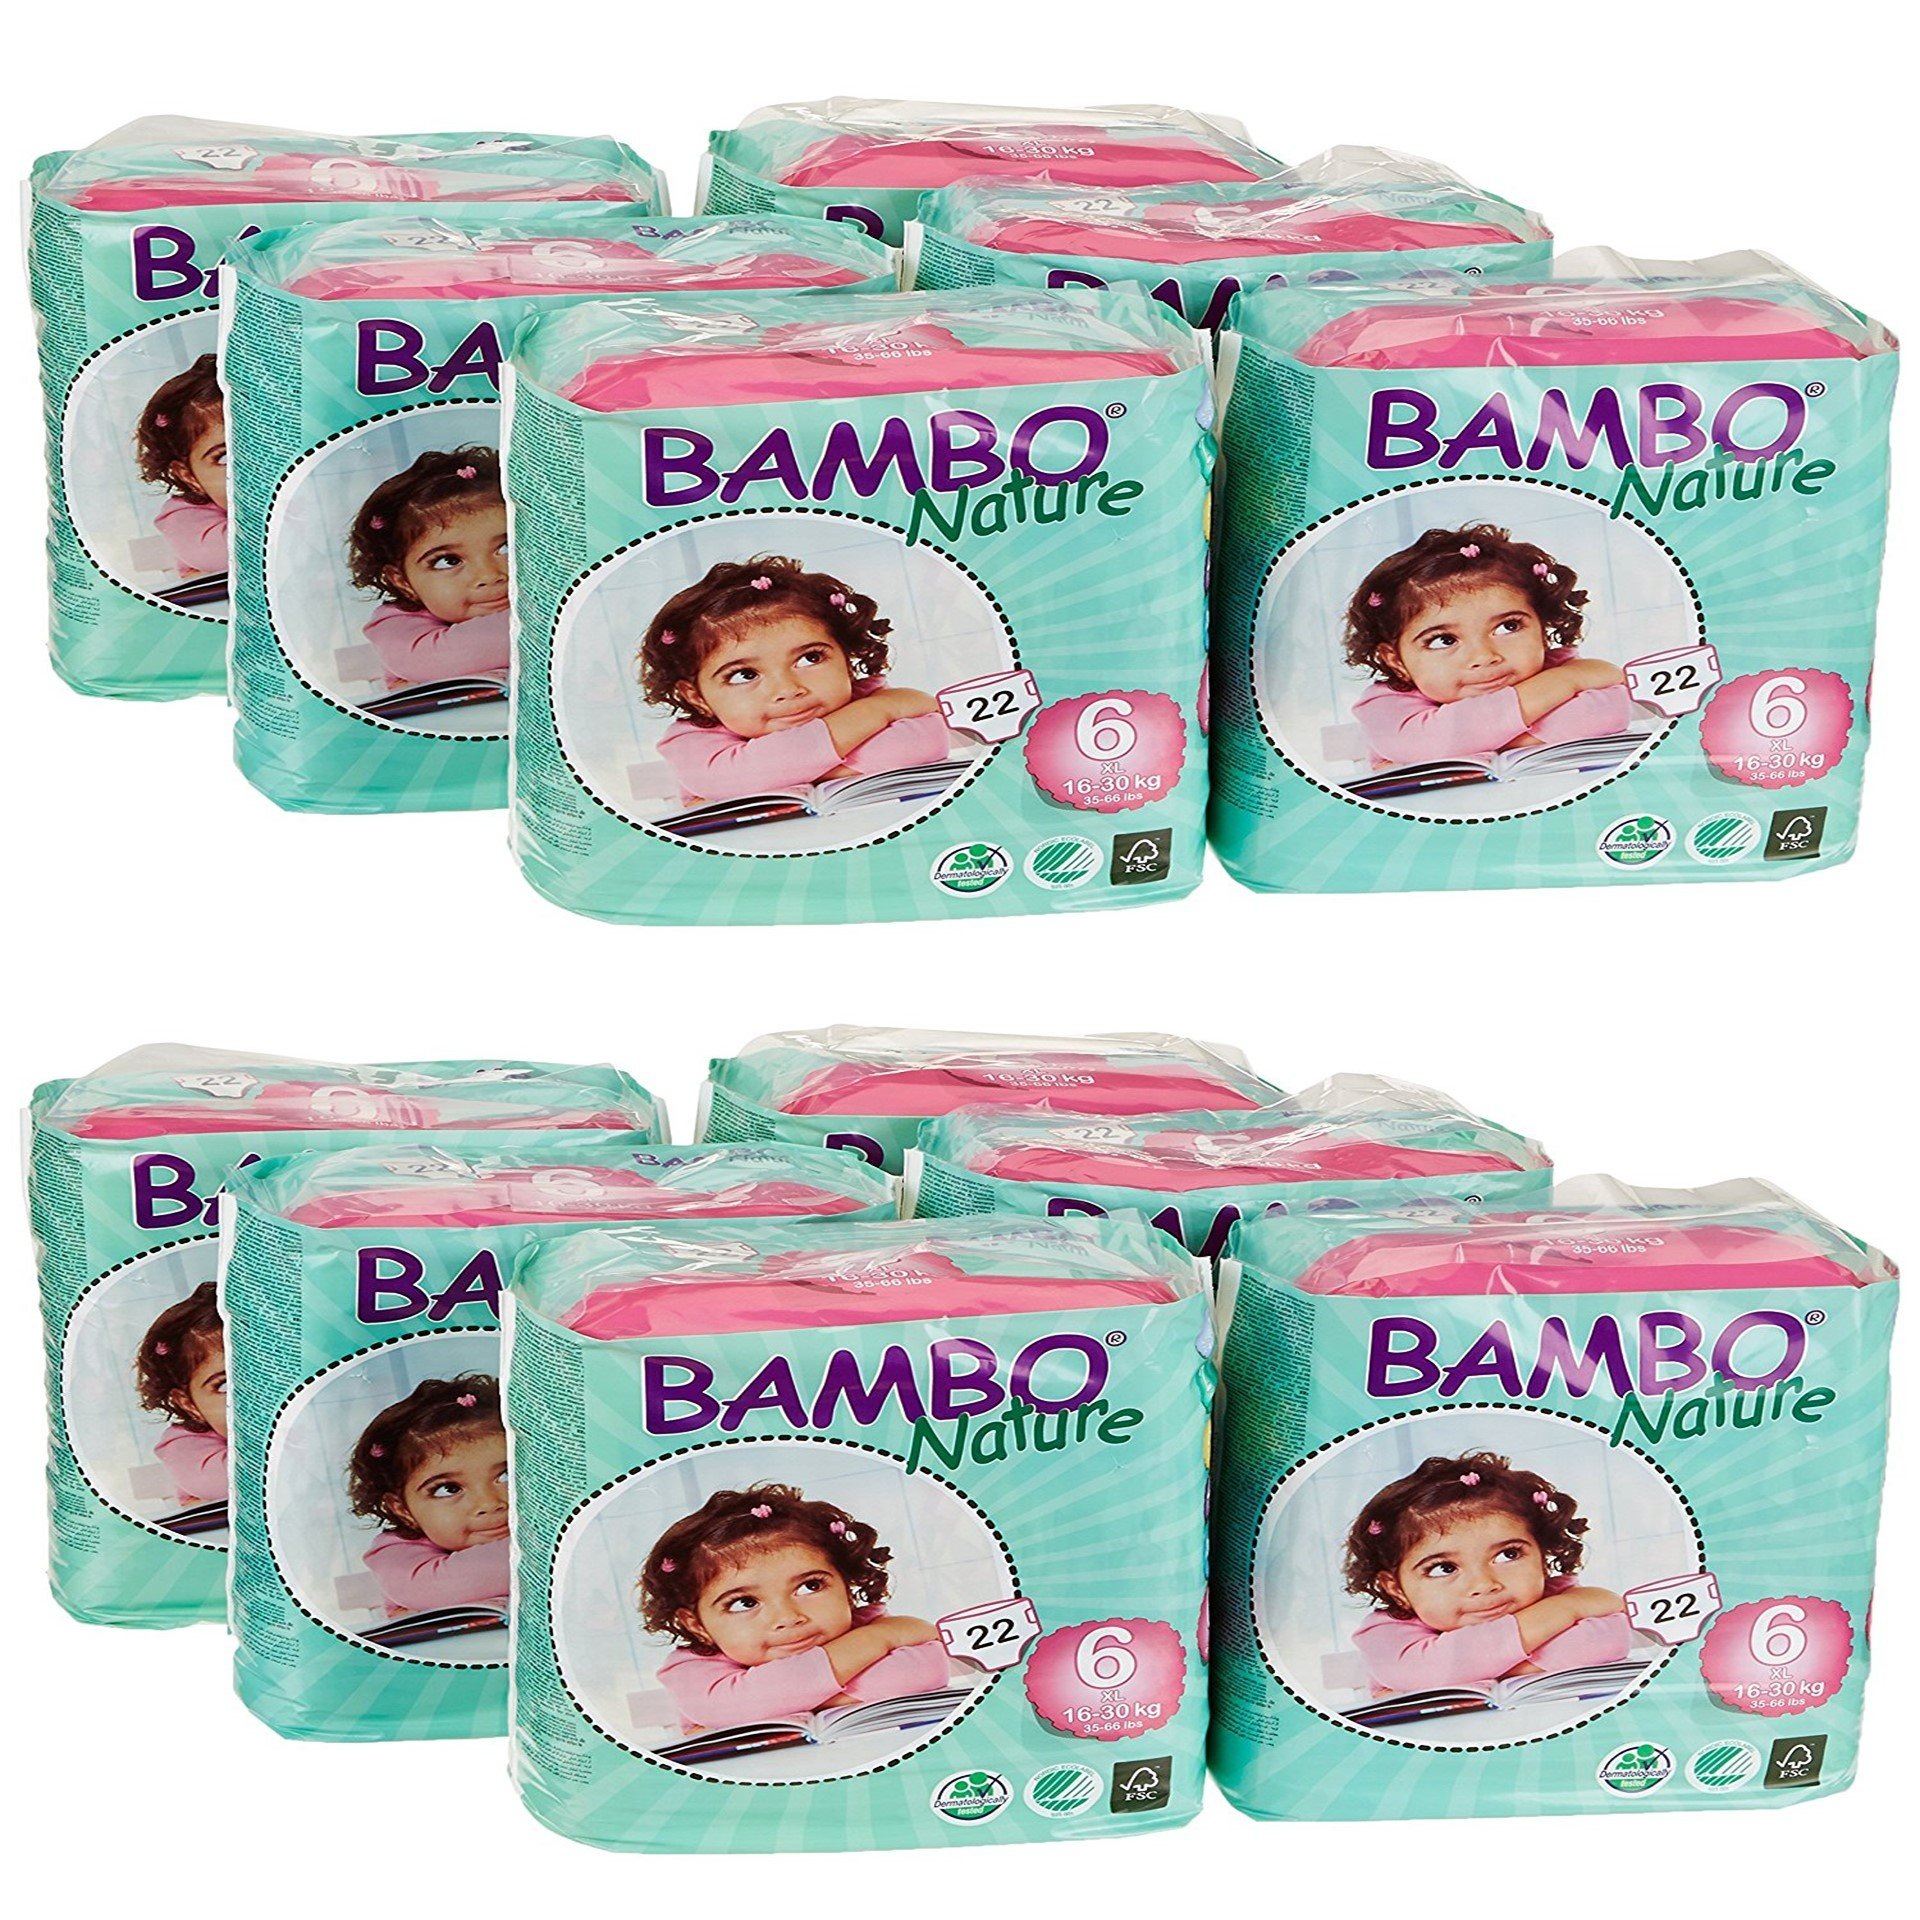 Bambo Nature Baby Diapers Classic, Size 6 (2 Cases of 132), 264 Count